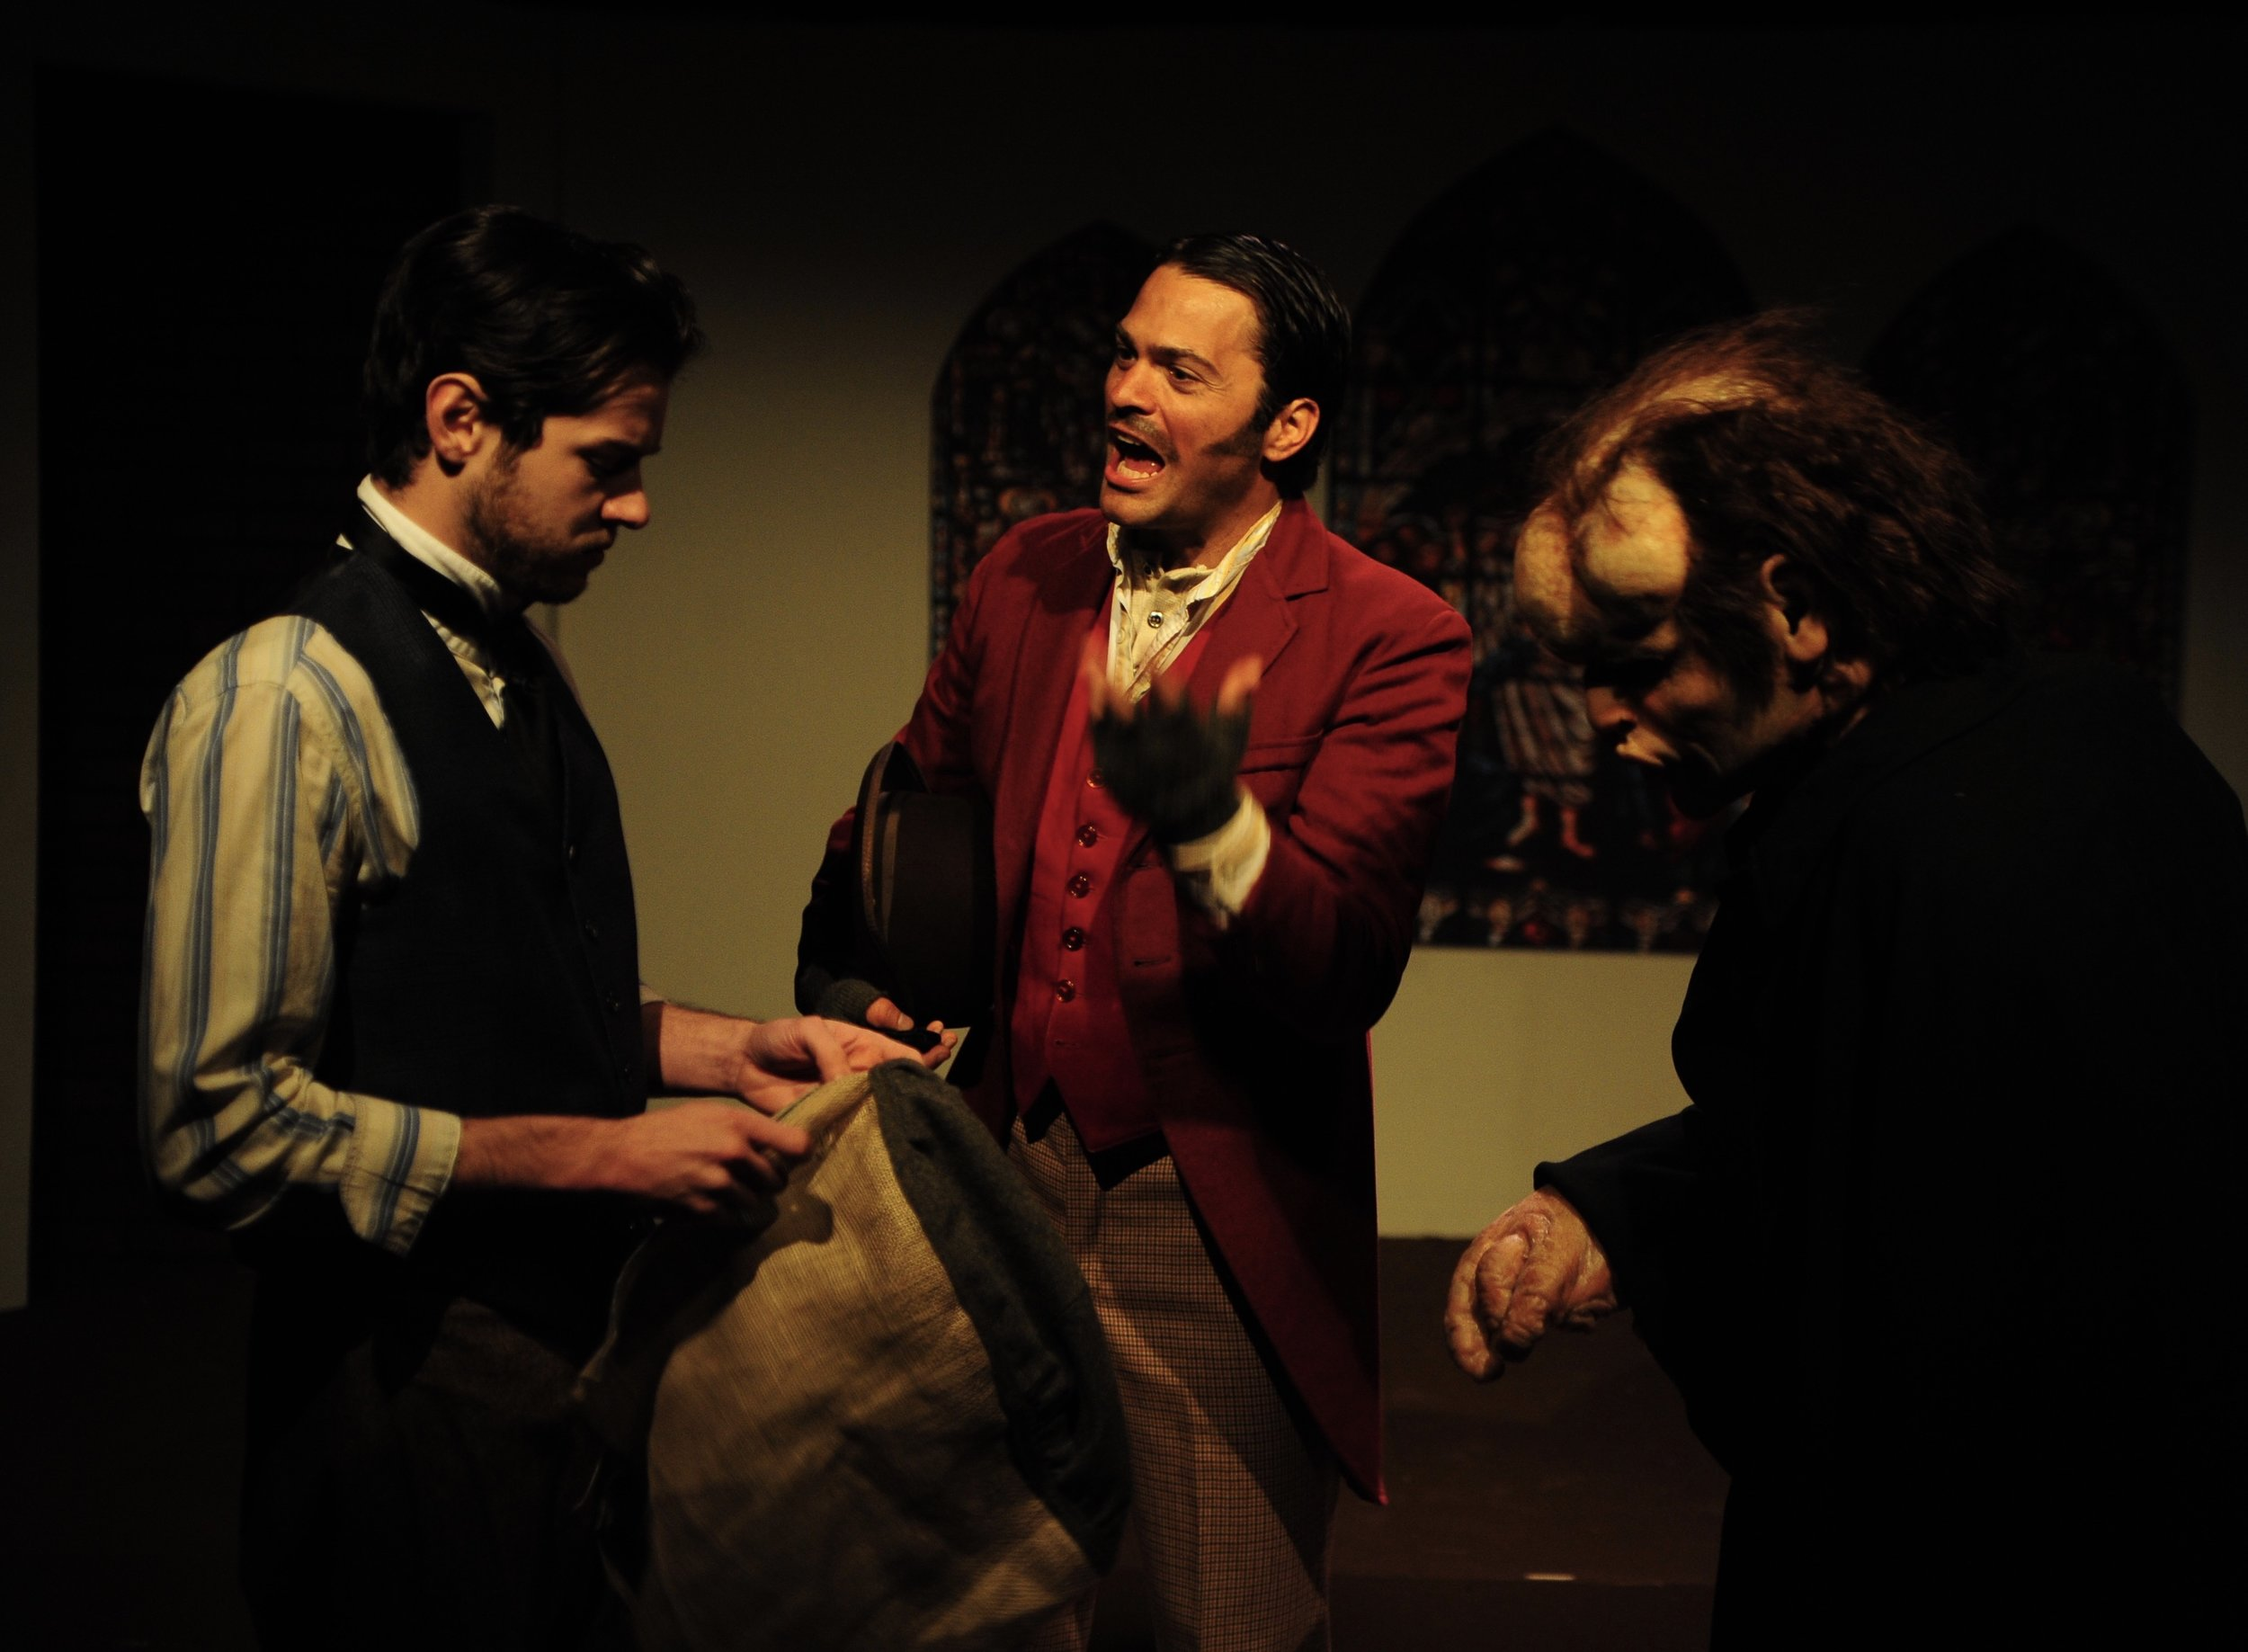 Caleb Neet (Conductor), David Folsom (Ross), and Sean Hoagland (John Merrick) in Lascaux Entertainment's 2011 production of  The Elephant Man , directed by John Drouillard.  Photo by Alysa Brennan.